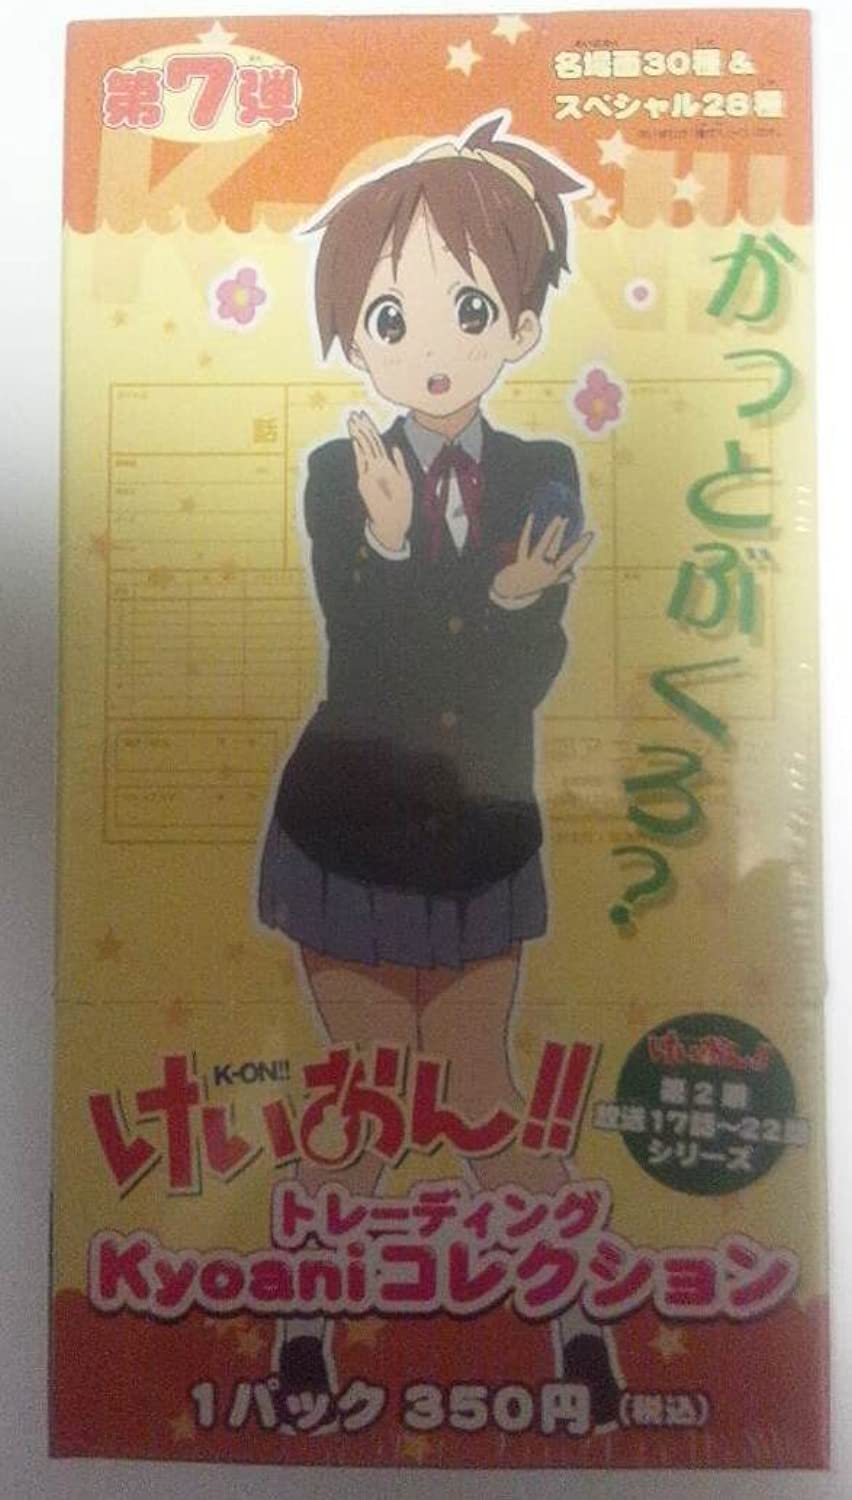 K-On  Kyoto Anitoreka [7] bullet (1BOX) K-ON trading card (japan import)